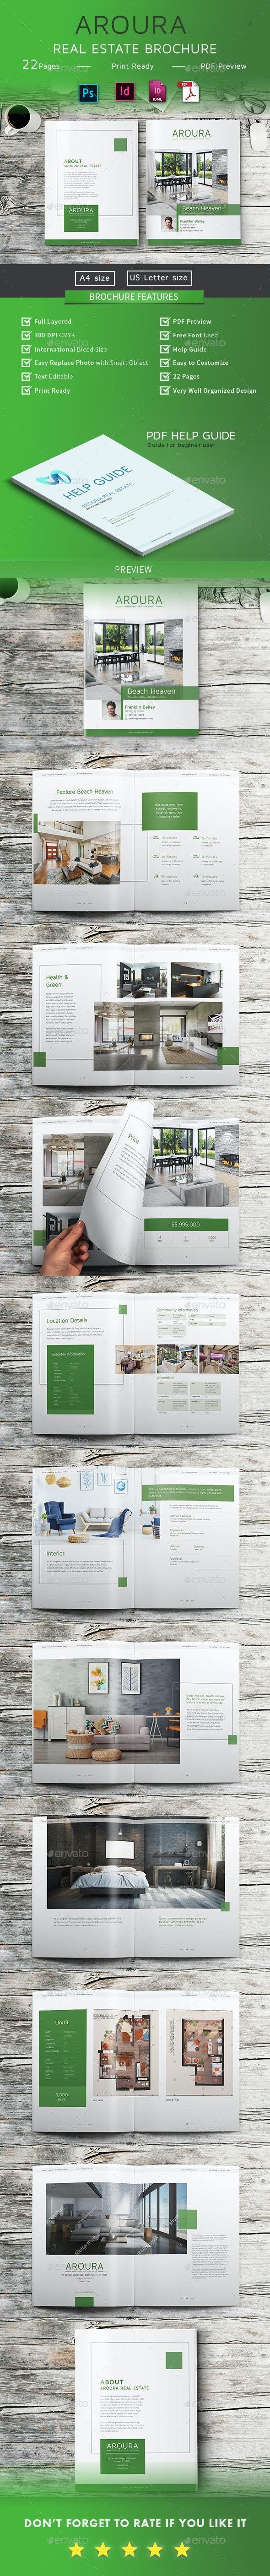 Real Estate Brochure - Aroura - Portfolio Brochures